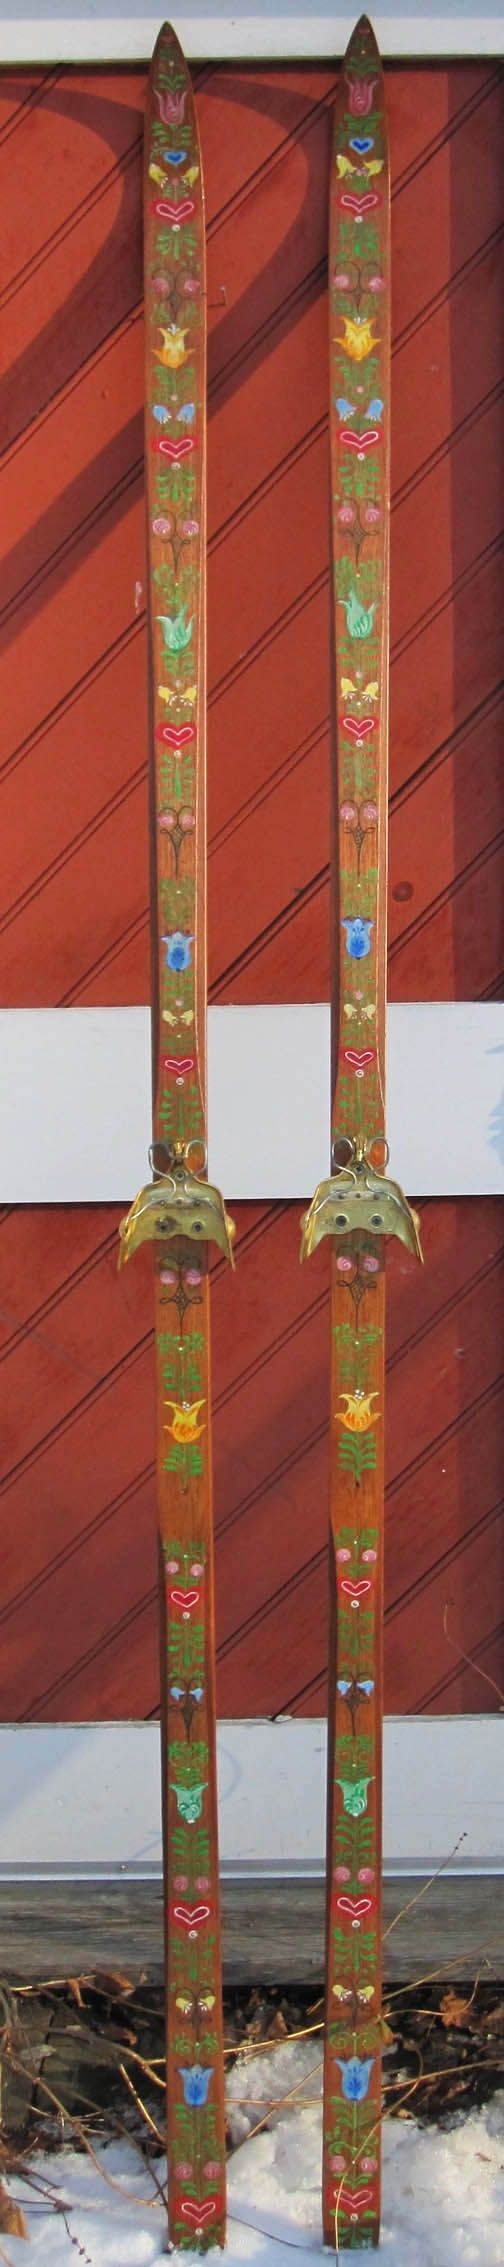 Bauernmalerei skis - I have two sets of wooden skis in my attic that I could paint like these!